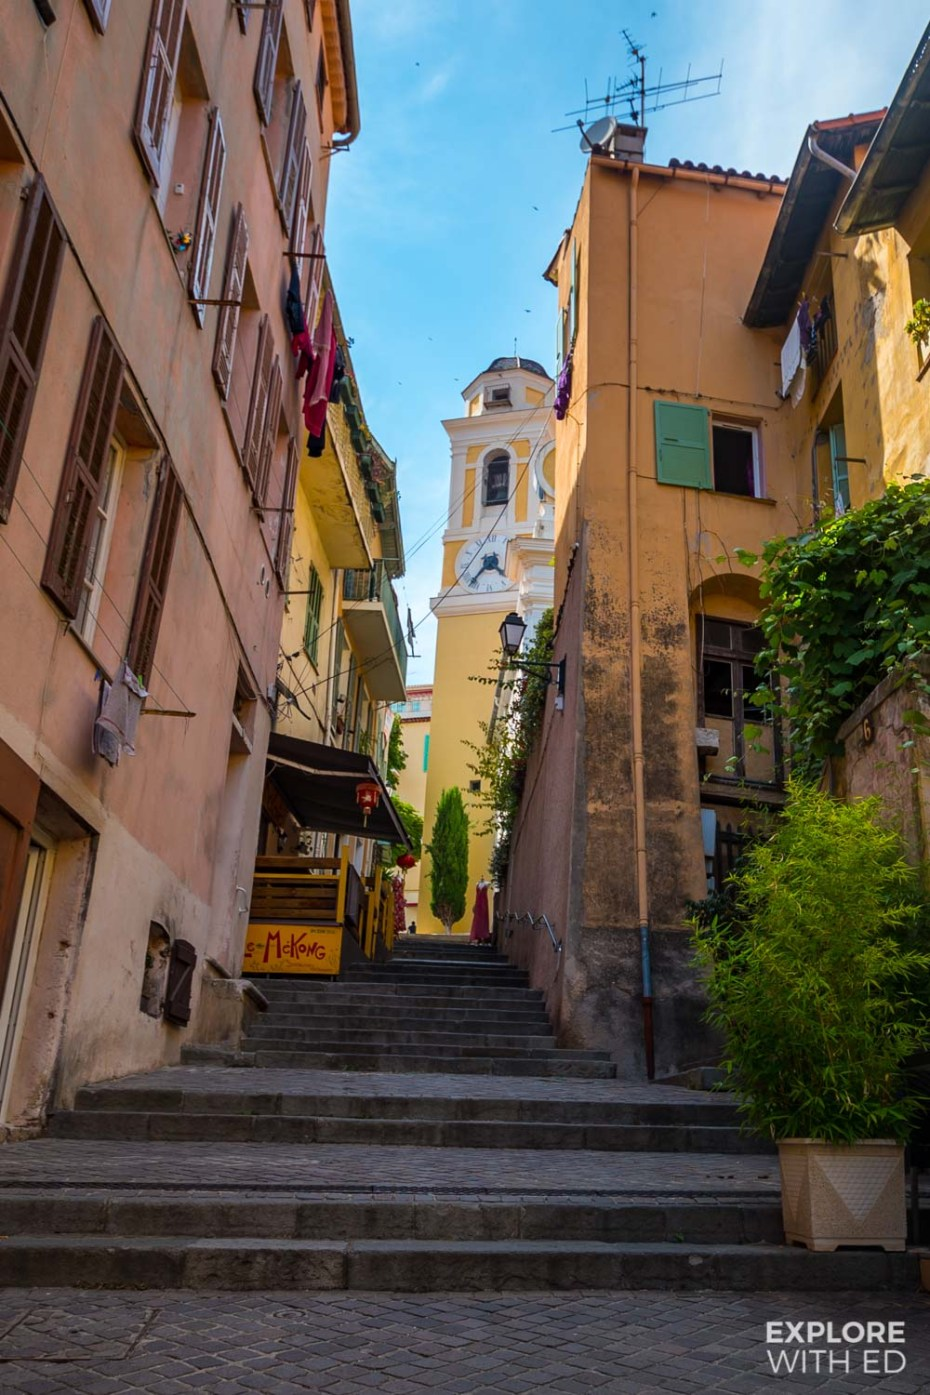 Charming streets of Villefranche-sur-Mer near Eze, France